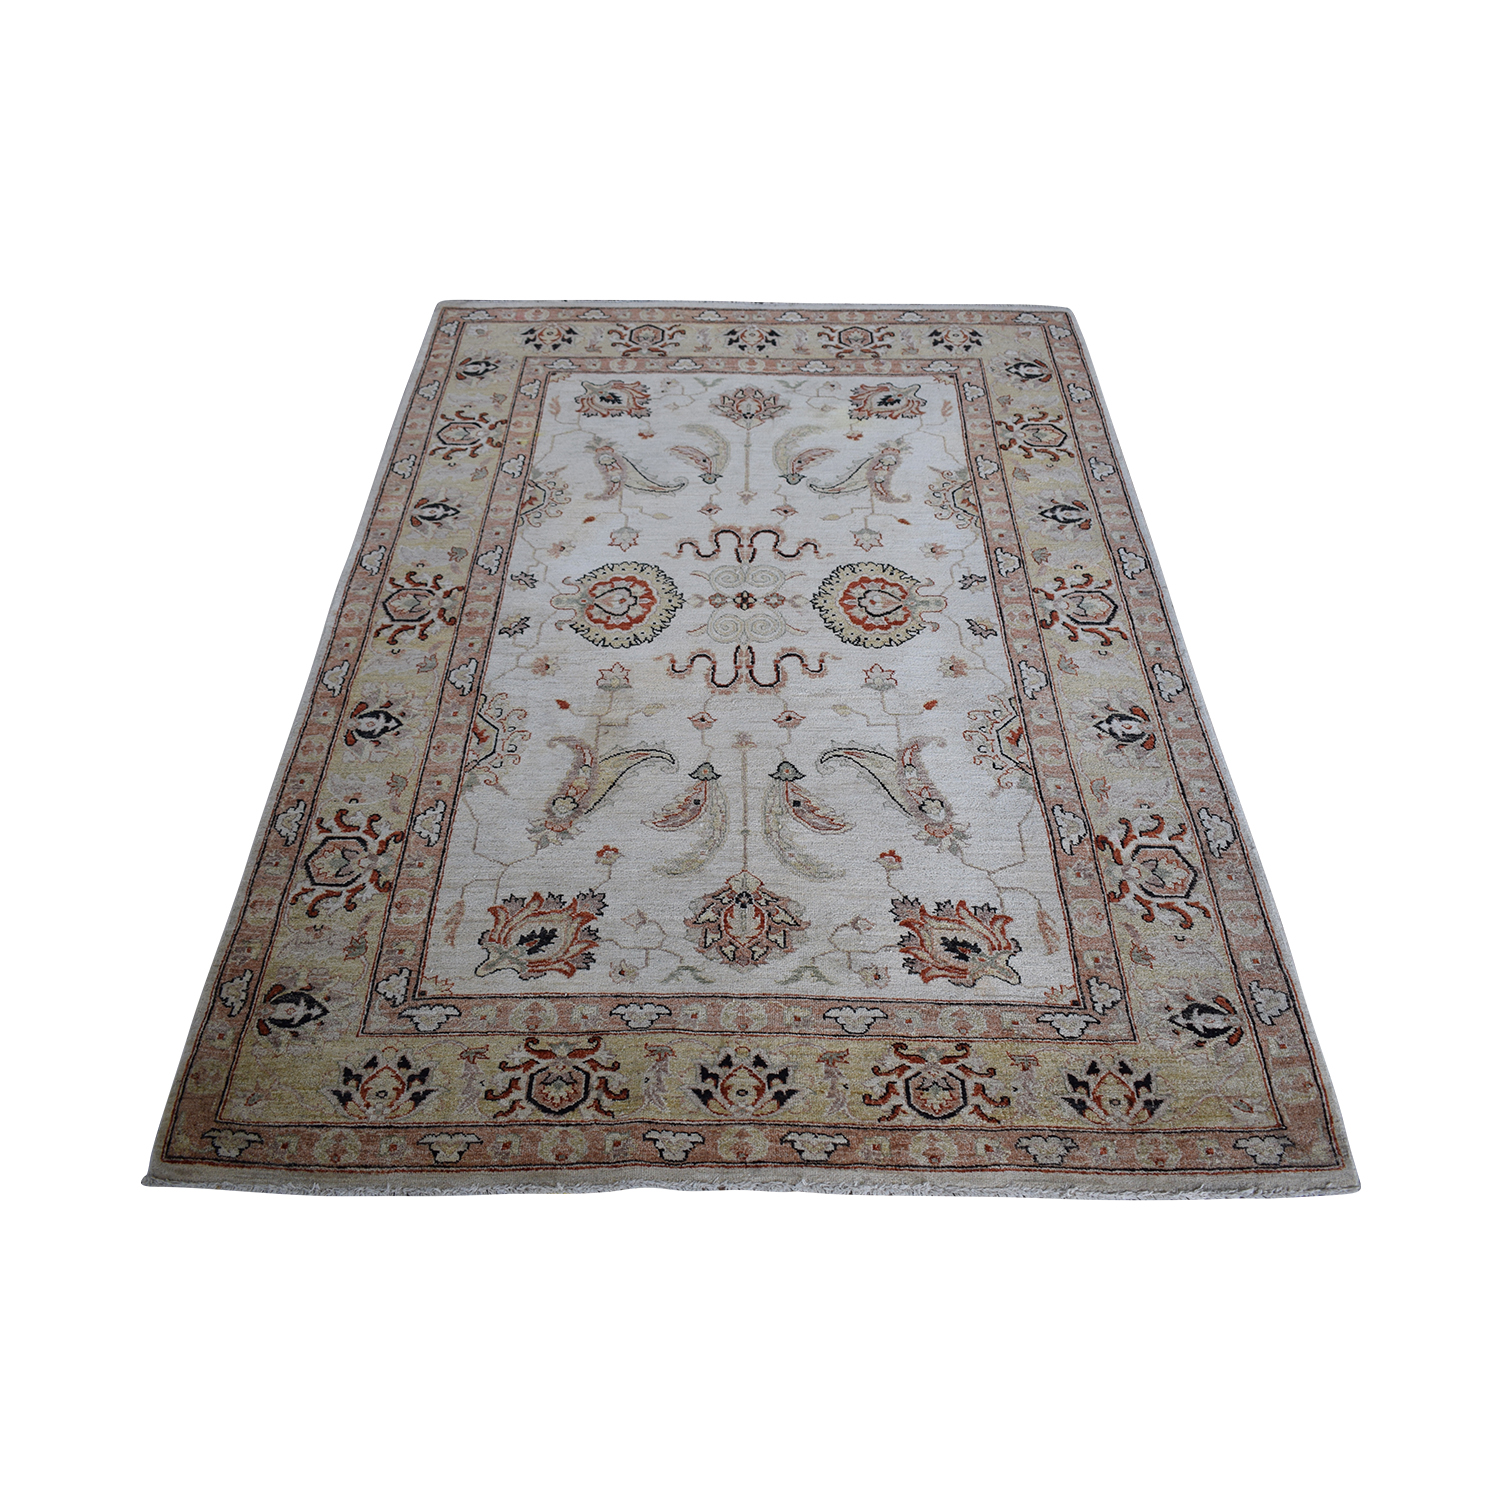 buy Wayfair Wayfair Patterned Area Rug online